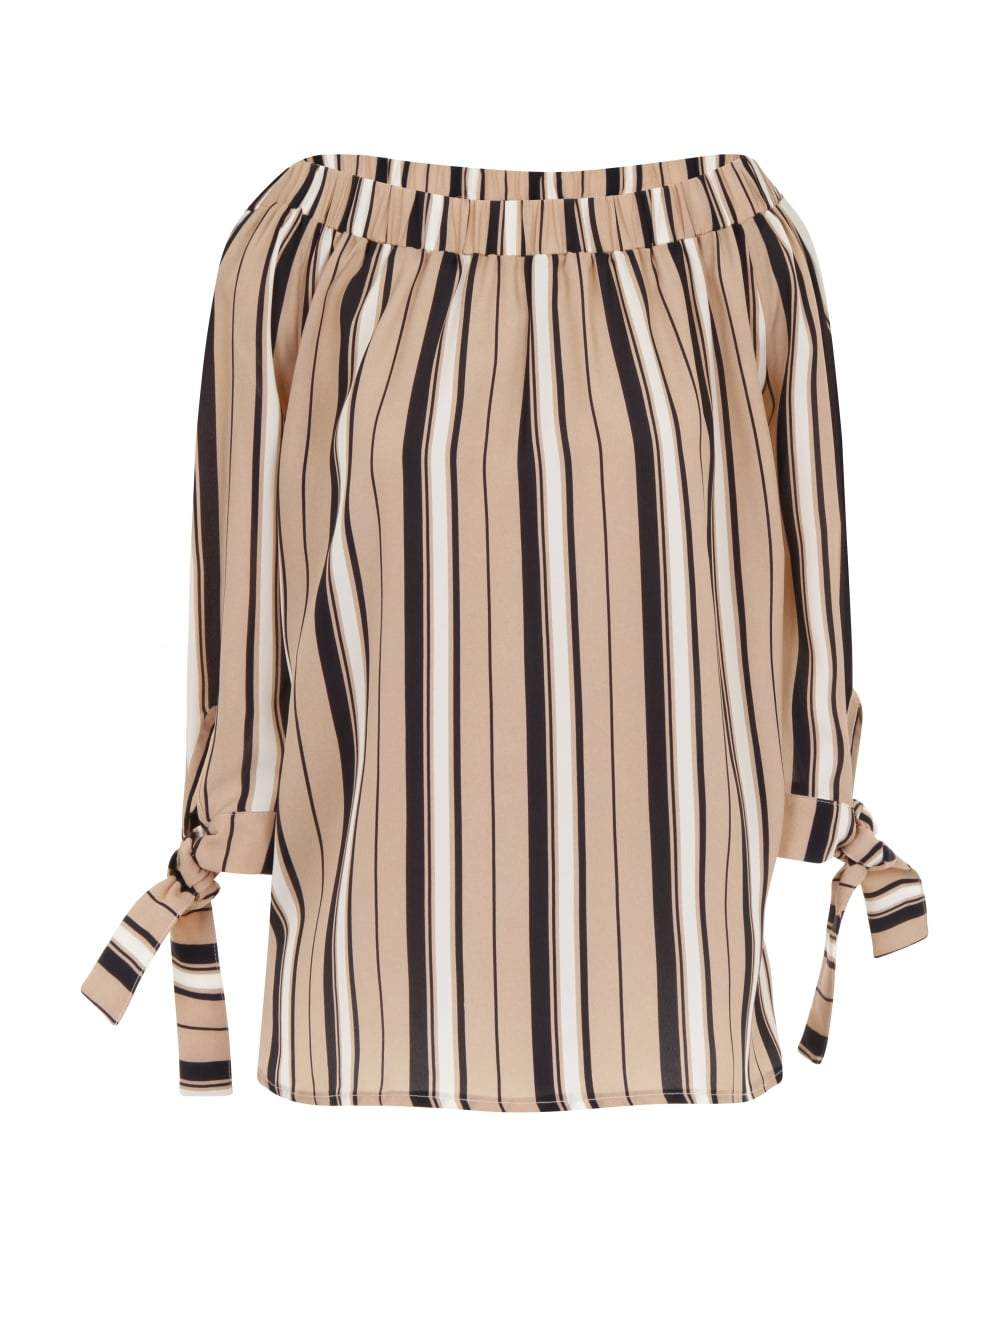 Camel, Navy & White Stripe Print Bandeau Tie Sleeve Top